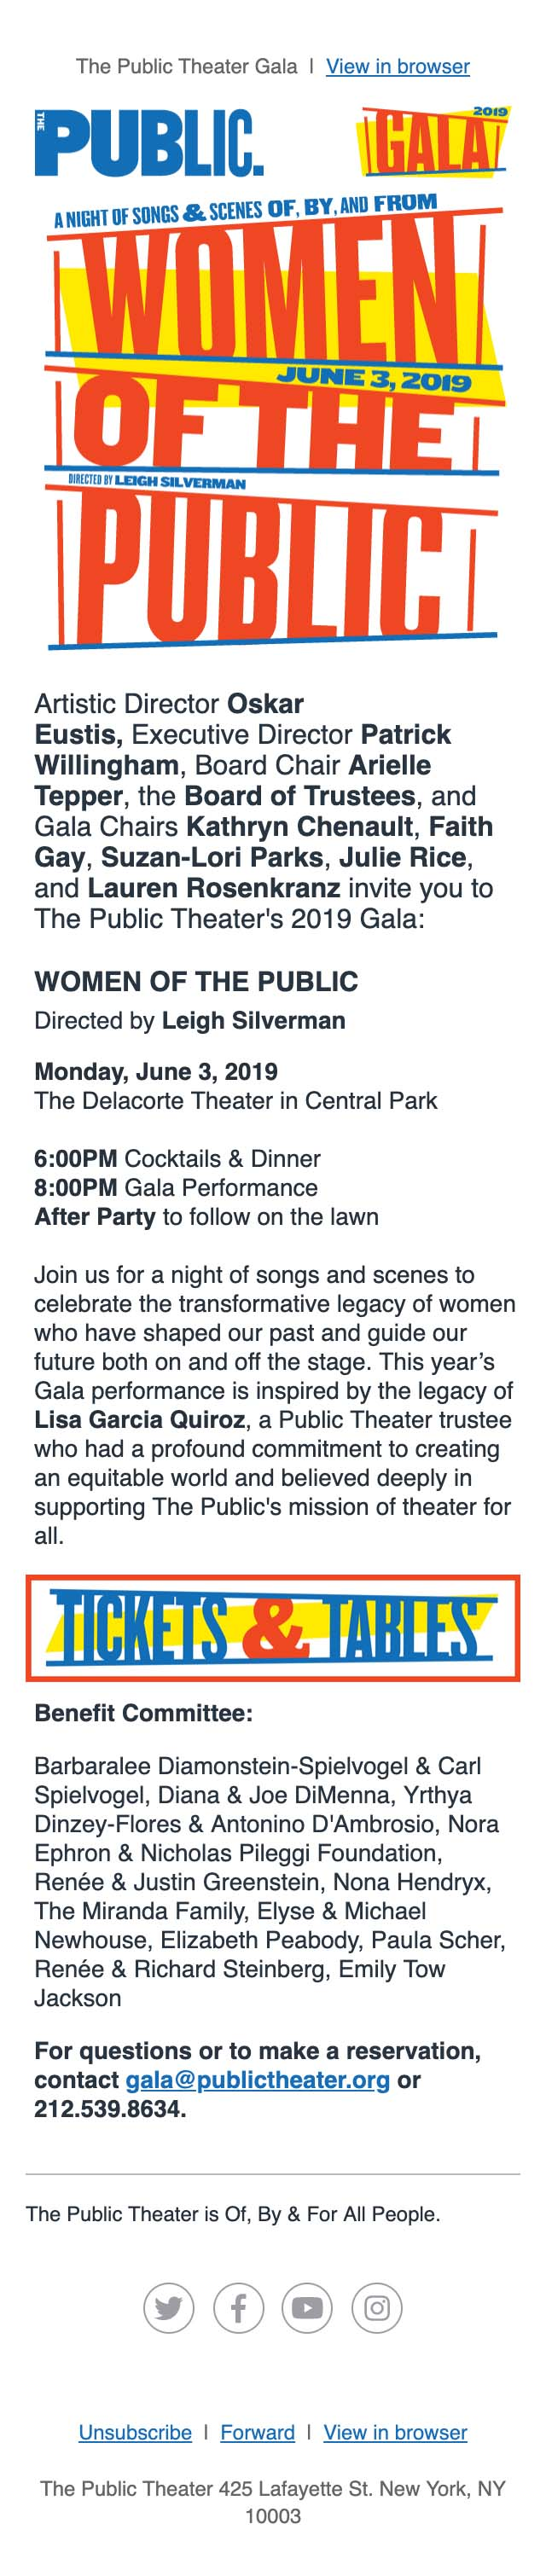 Join Us for our 2019 Gala: WOMEN OF THE PUBLIC - mobile view